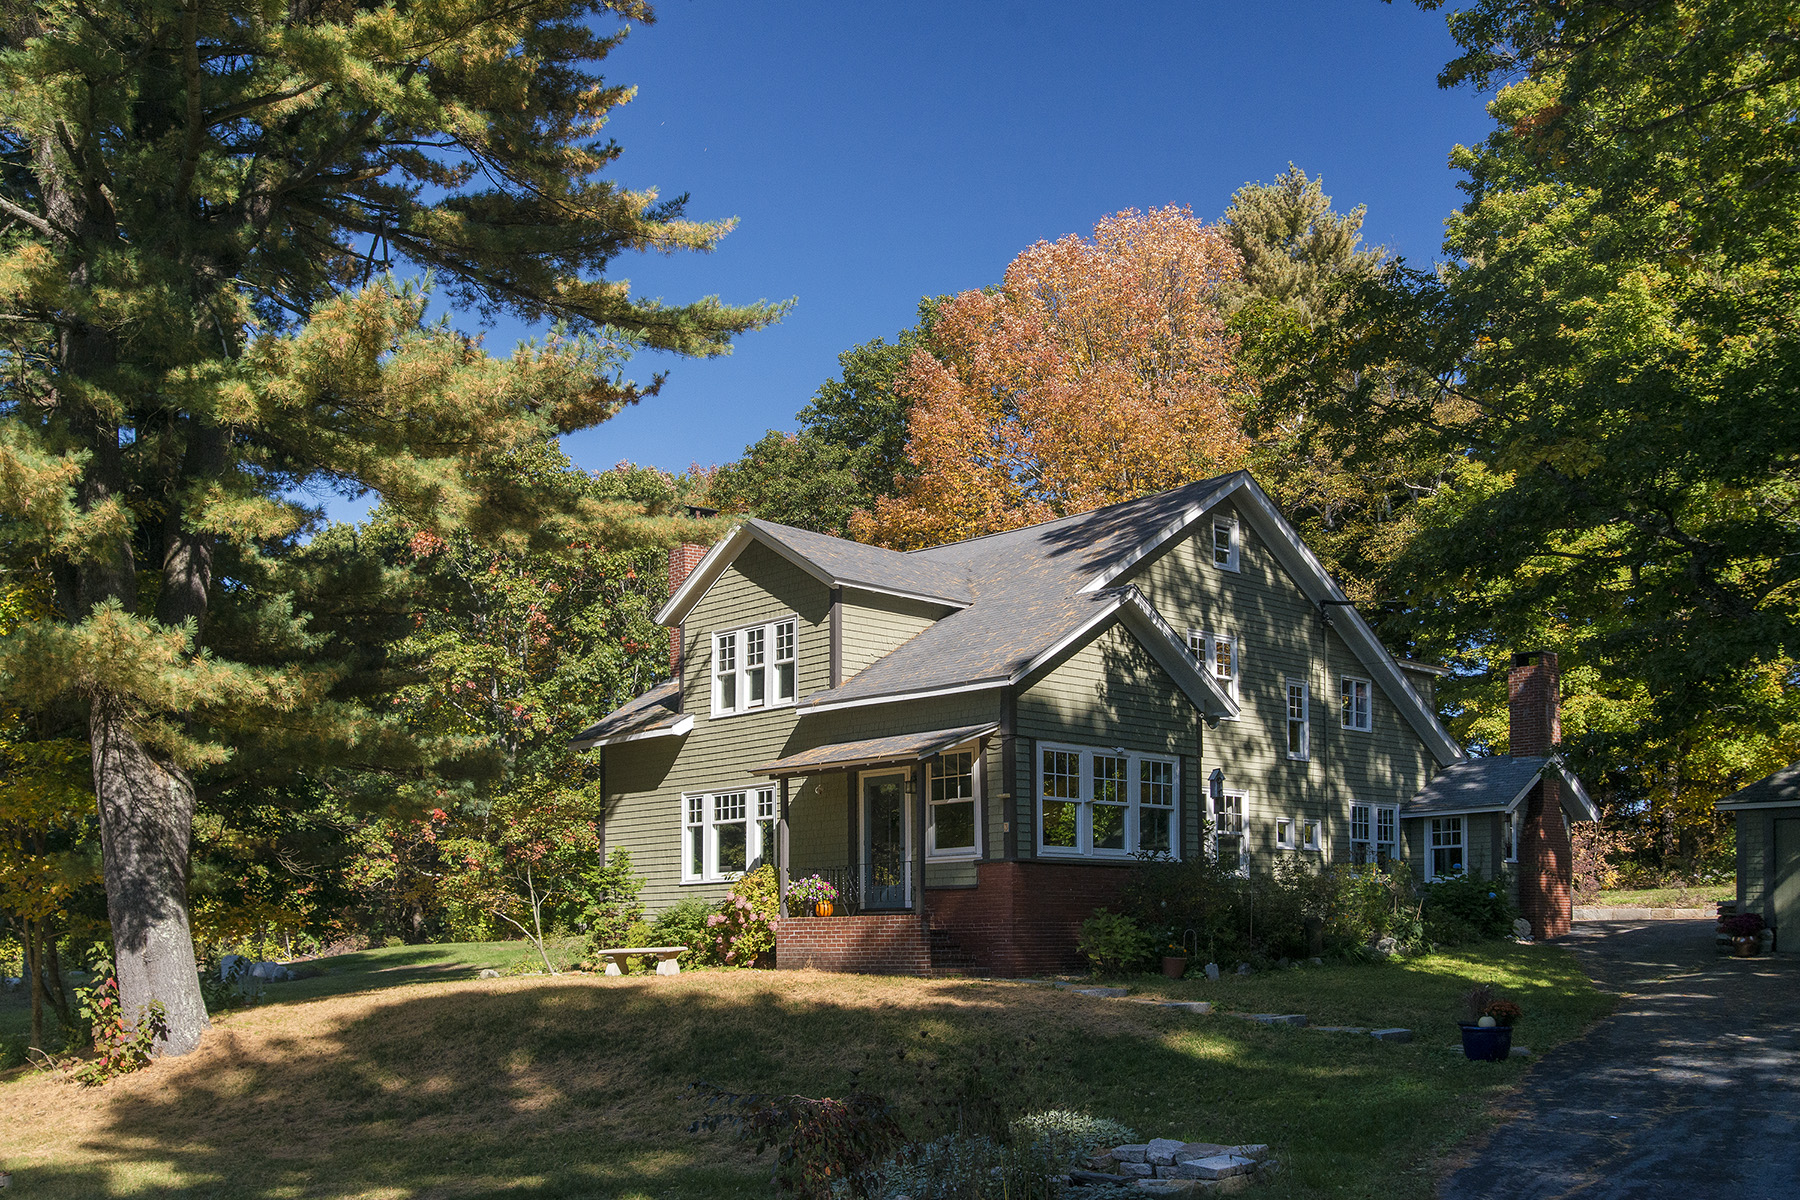 Single Family Home for Sale at 3 Elysian Way Scarborough, Maine, 04074 United States